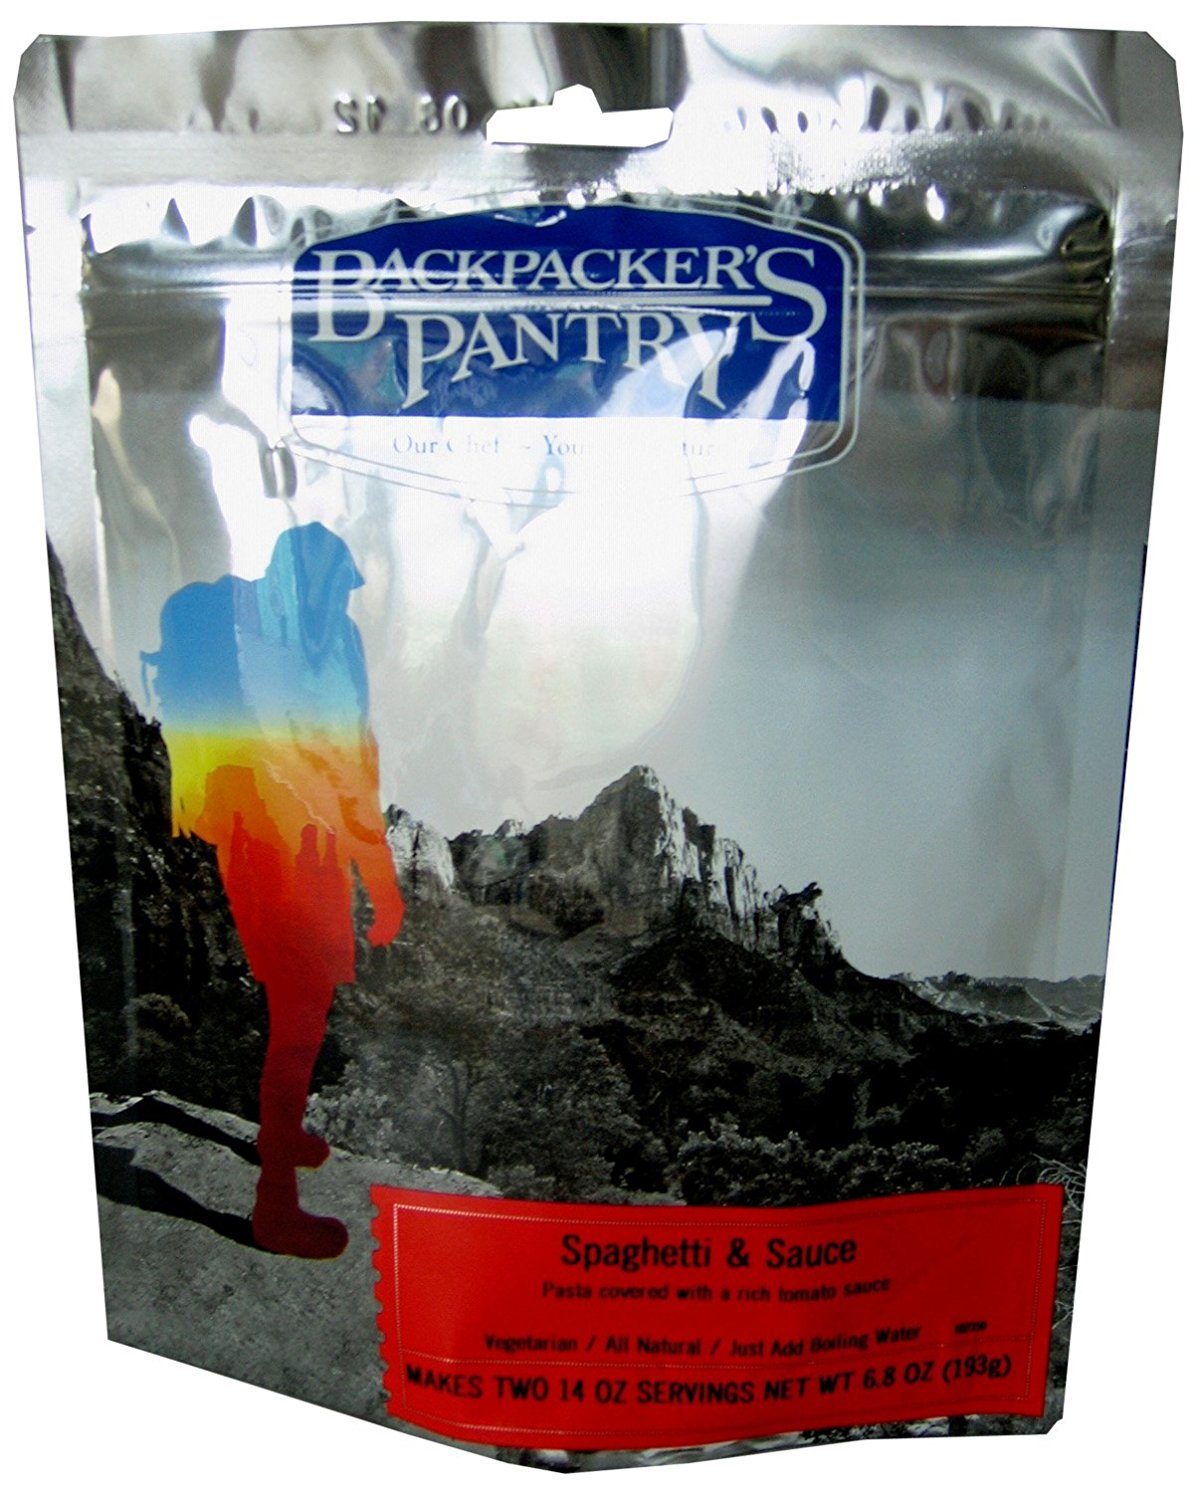 Spaghetti & Sauce, Makes two 14oz Servings..., By Backpacker's Pantry Ship from US by